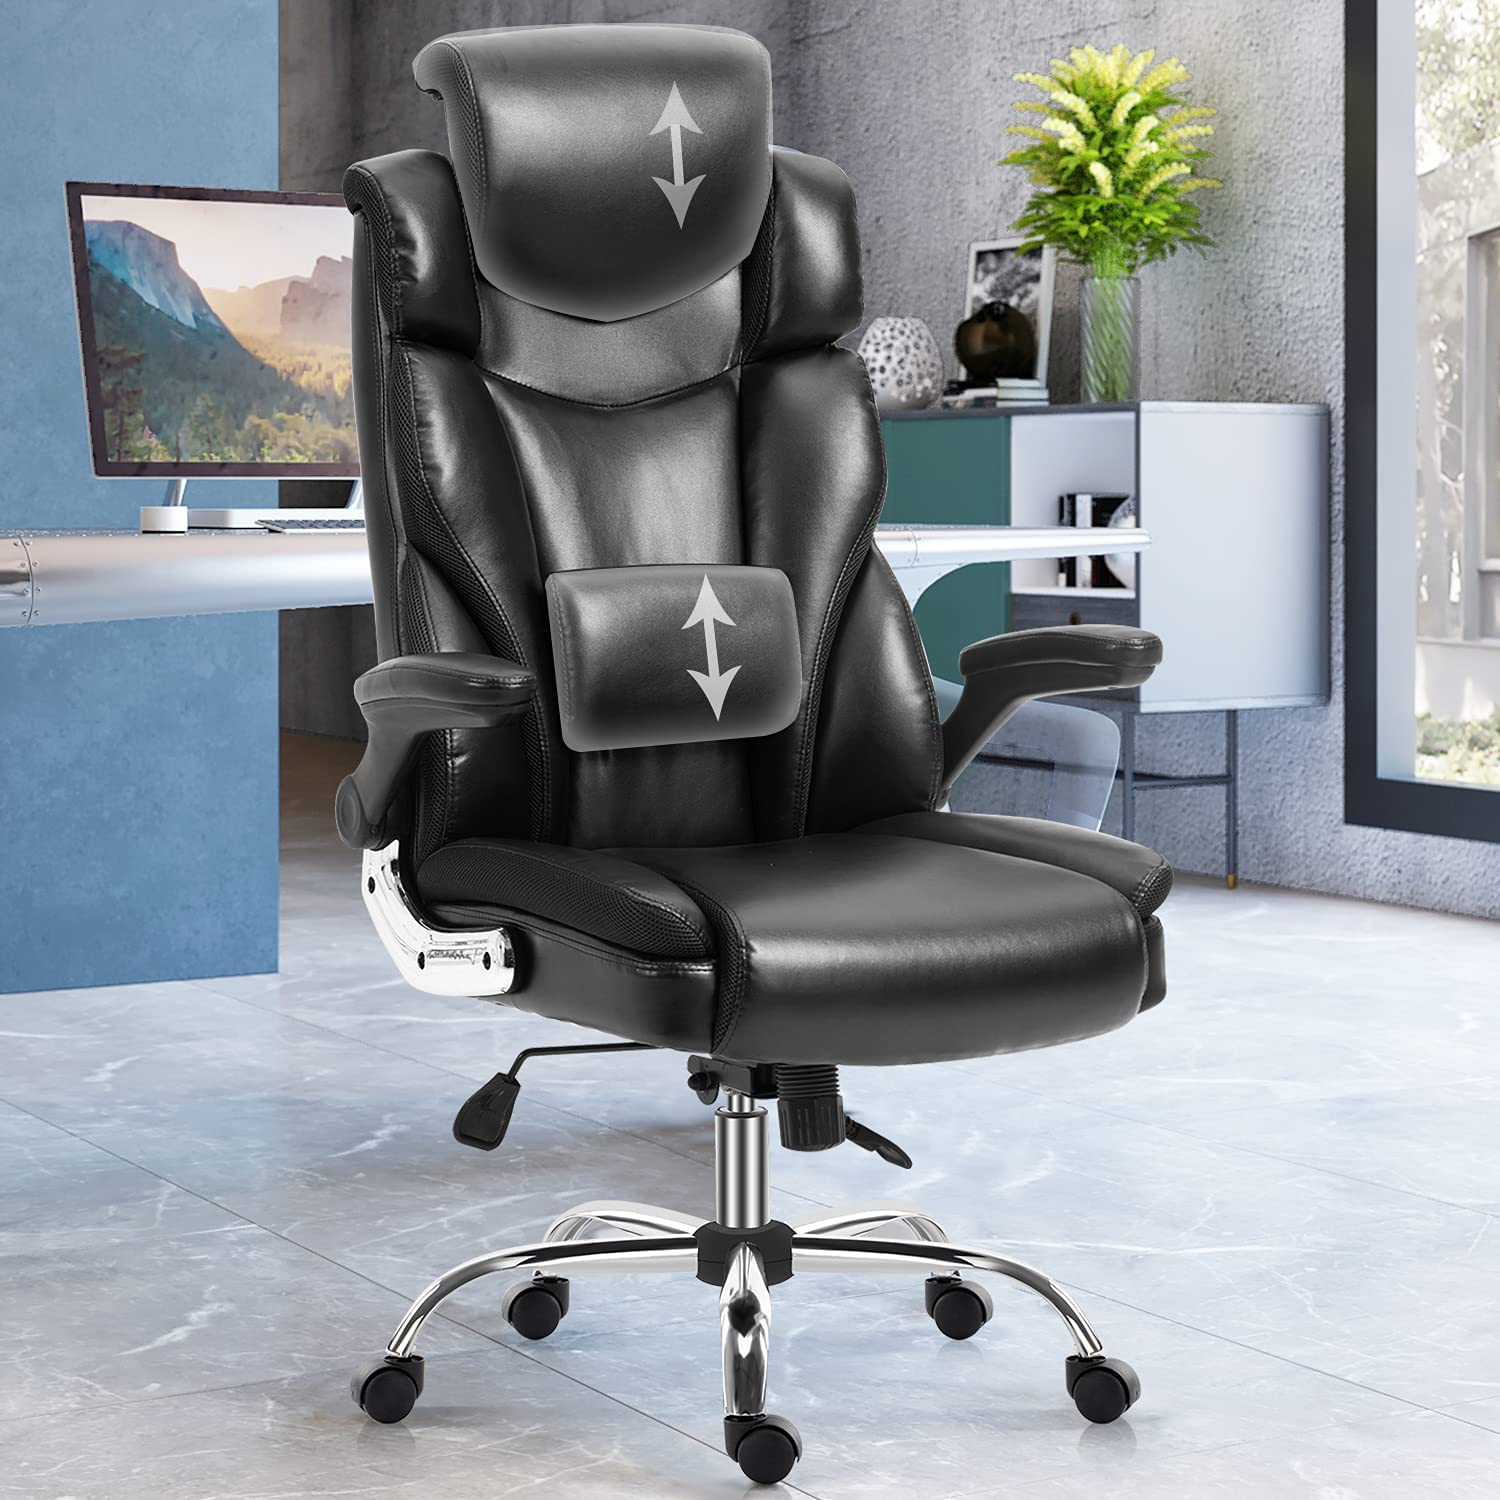 YAMASORO Ergonomic Executive Office Chair Big and Tall for Heavy People,Black PU Leather Computer Desk Chairs for Adults, Adjustable Arms,Lumbar Support,Headrest and Wheels, Home,Comfortable : Office Products